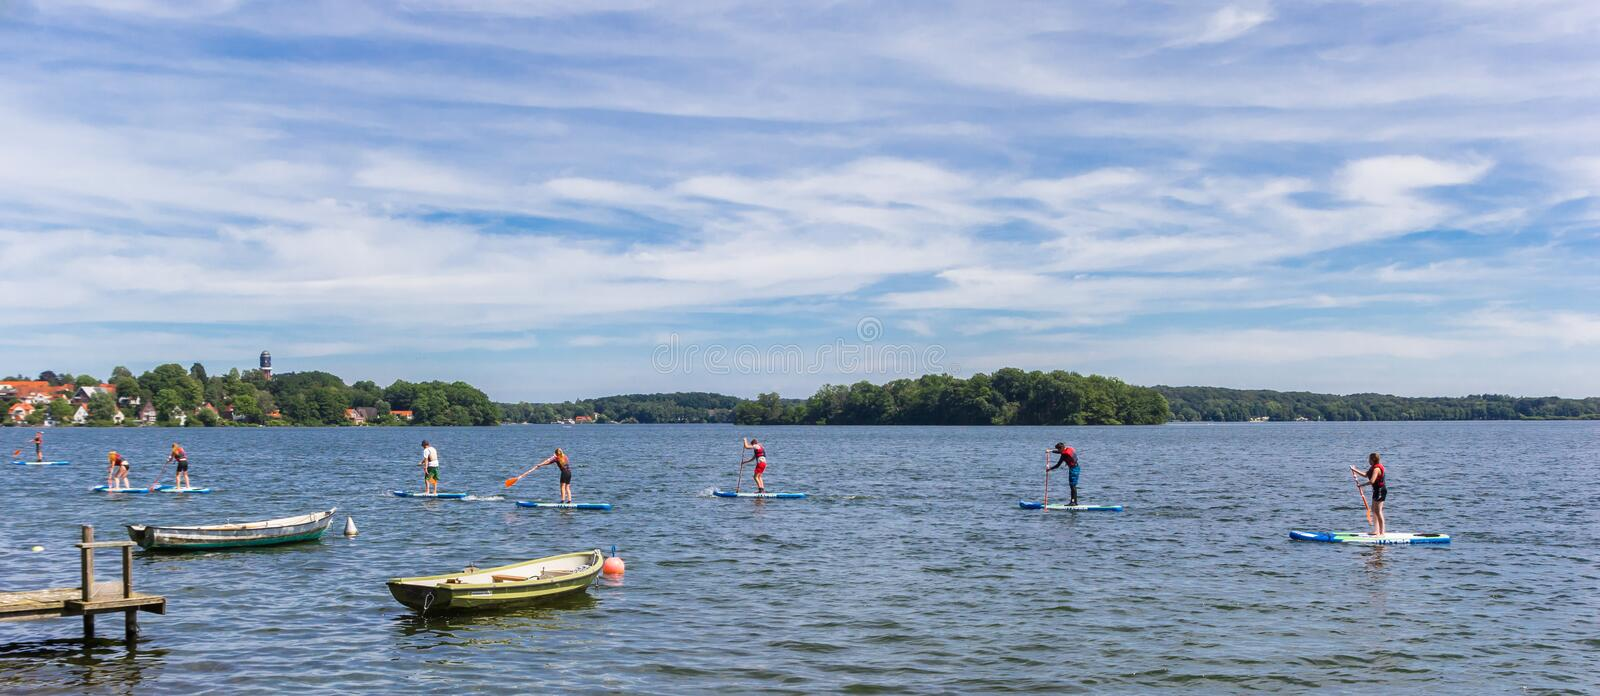 Panorama of people doing standup paddleboarding in the lake of Plon stock photos